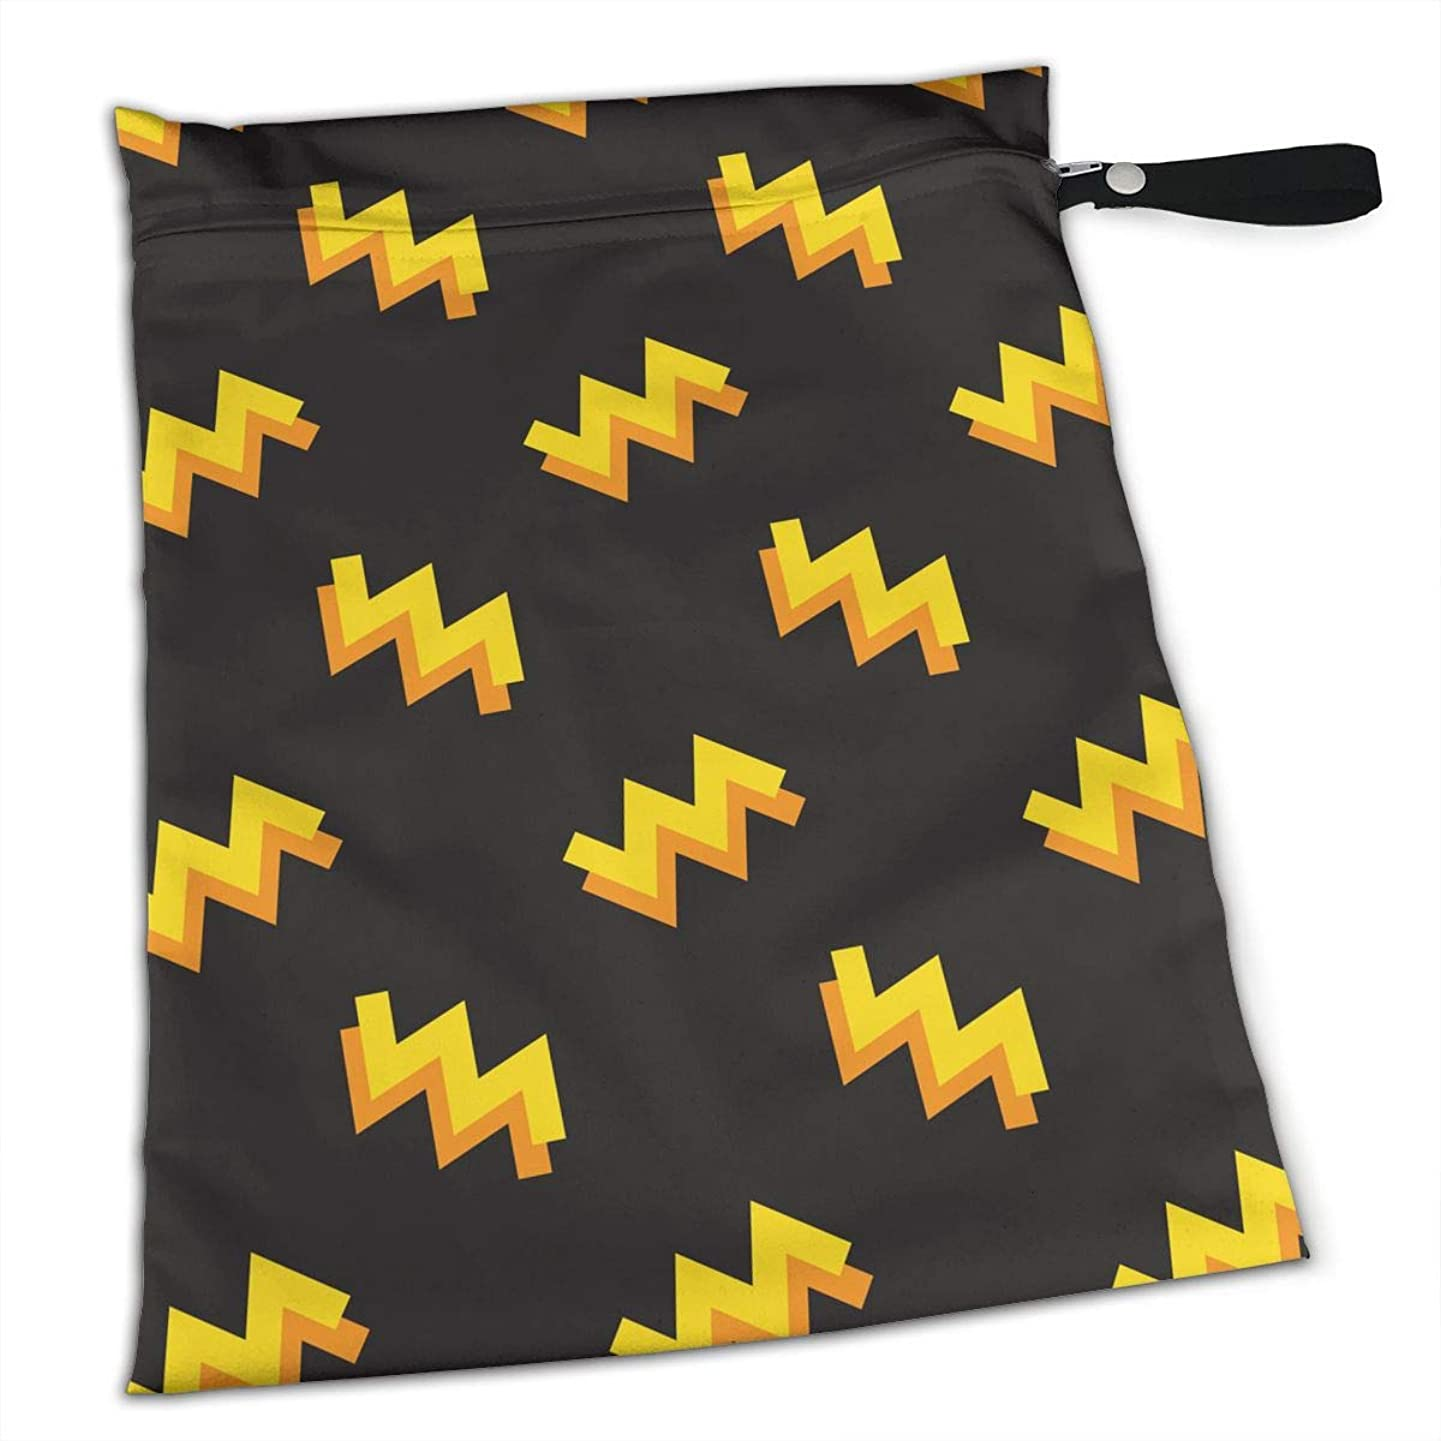 YyTiin Reusable Snack and Everything Bags - Memphis Style,Large